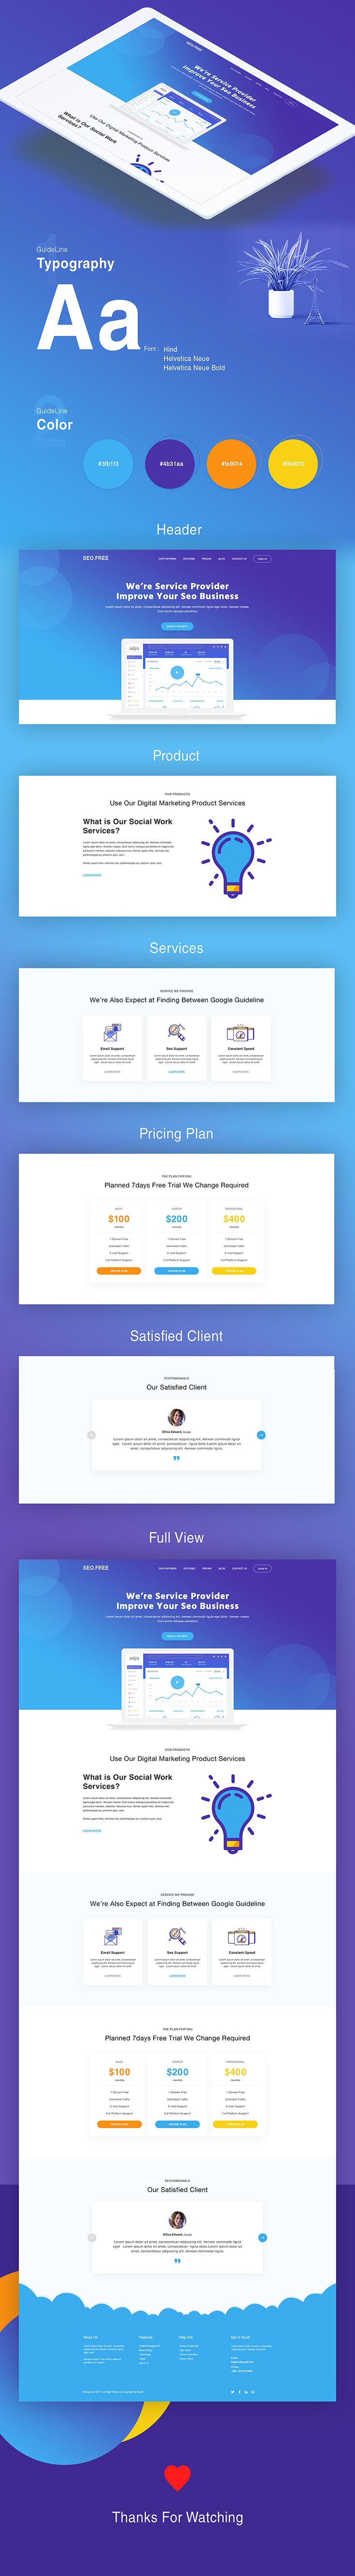 Free SEO Landing Page Concept UI template you can use it in your upcoming projects related to the web design. It is available in psd format.